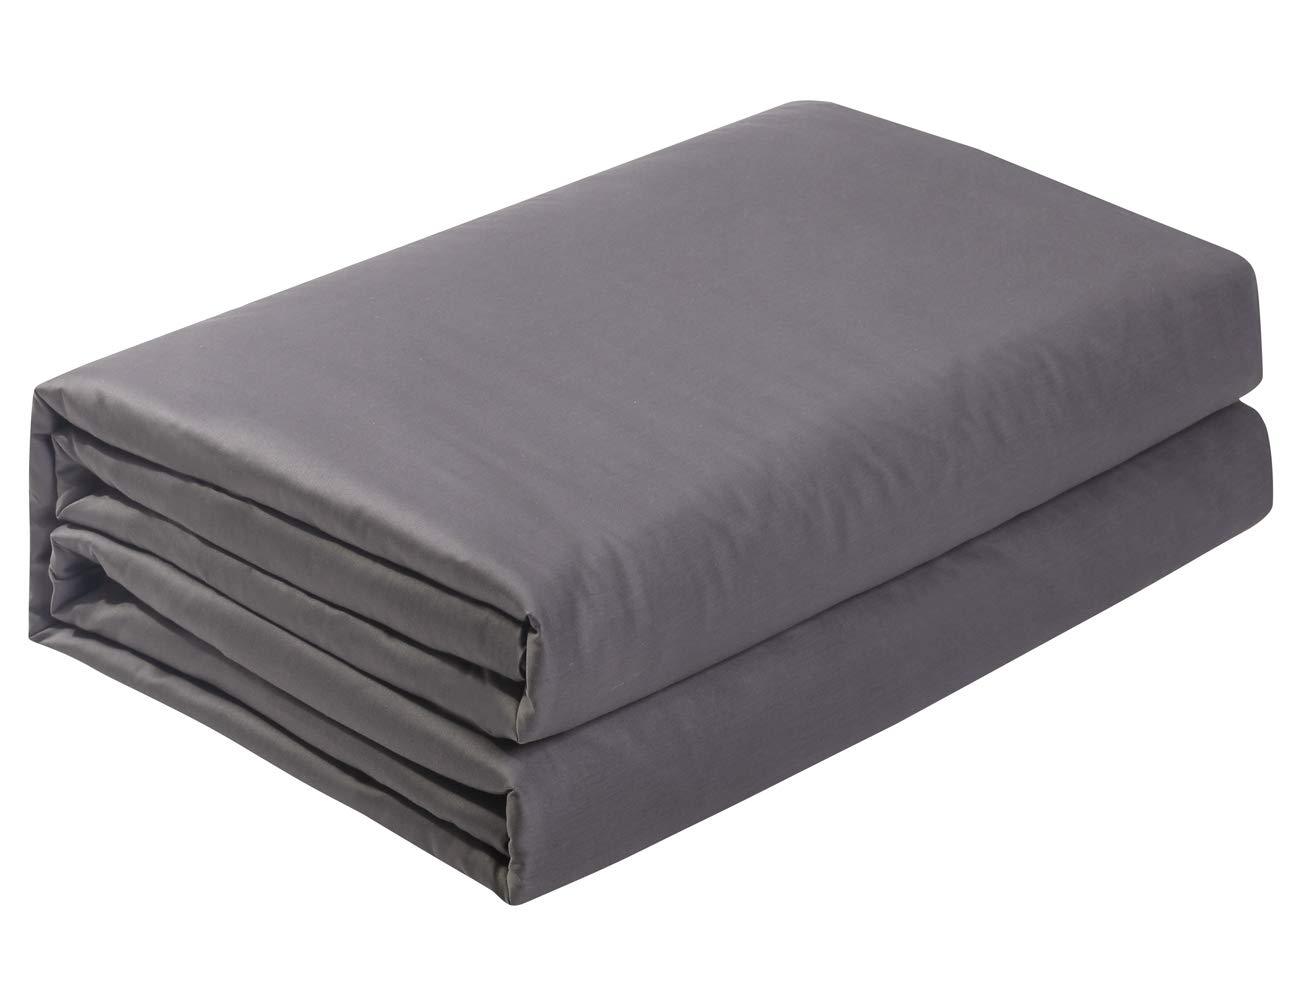 PHF Flat Sheet 300 Thread Count Satin 100% Cotton Natural Soft Durable Breathable Warm for Winter Queen Size Grey by PHF